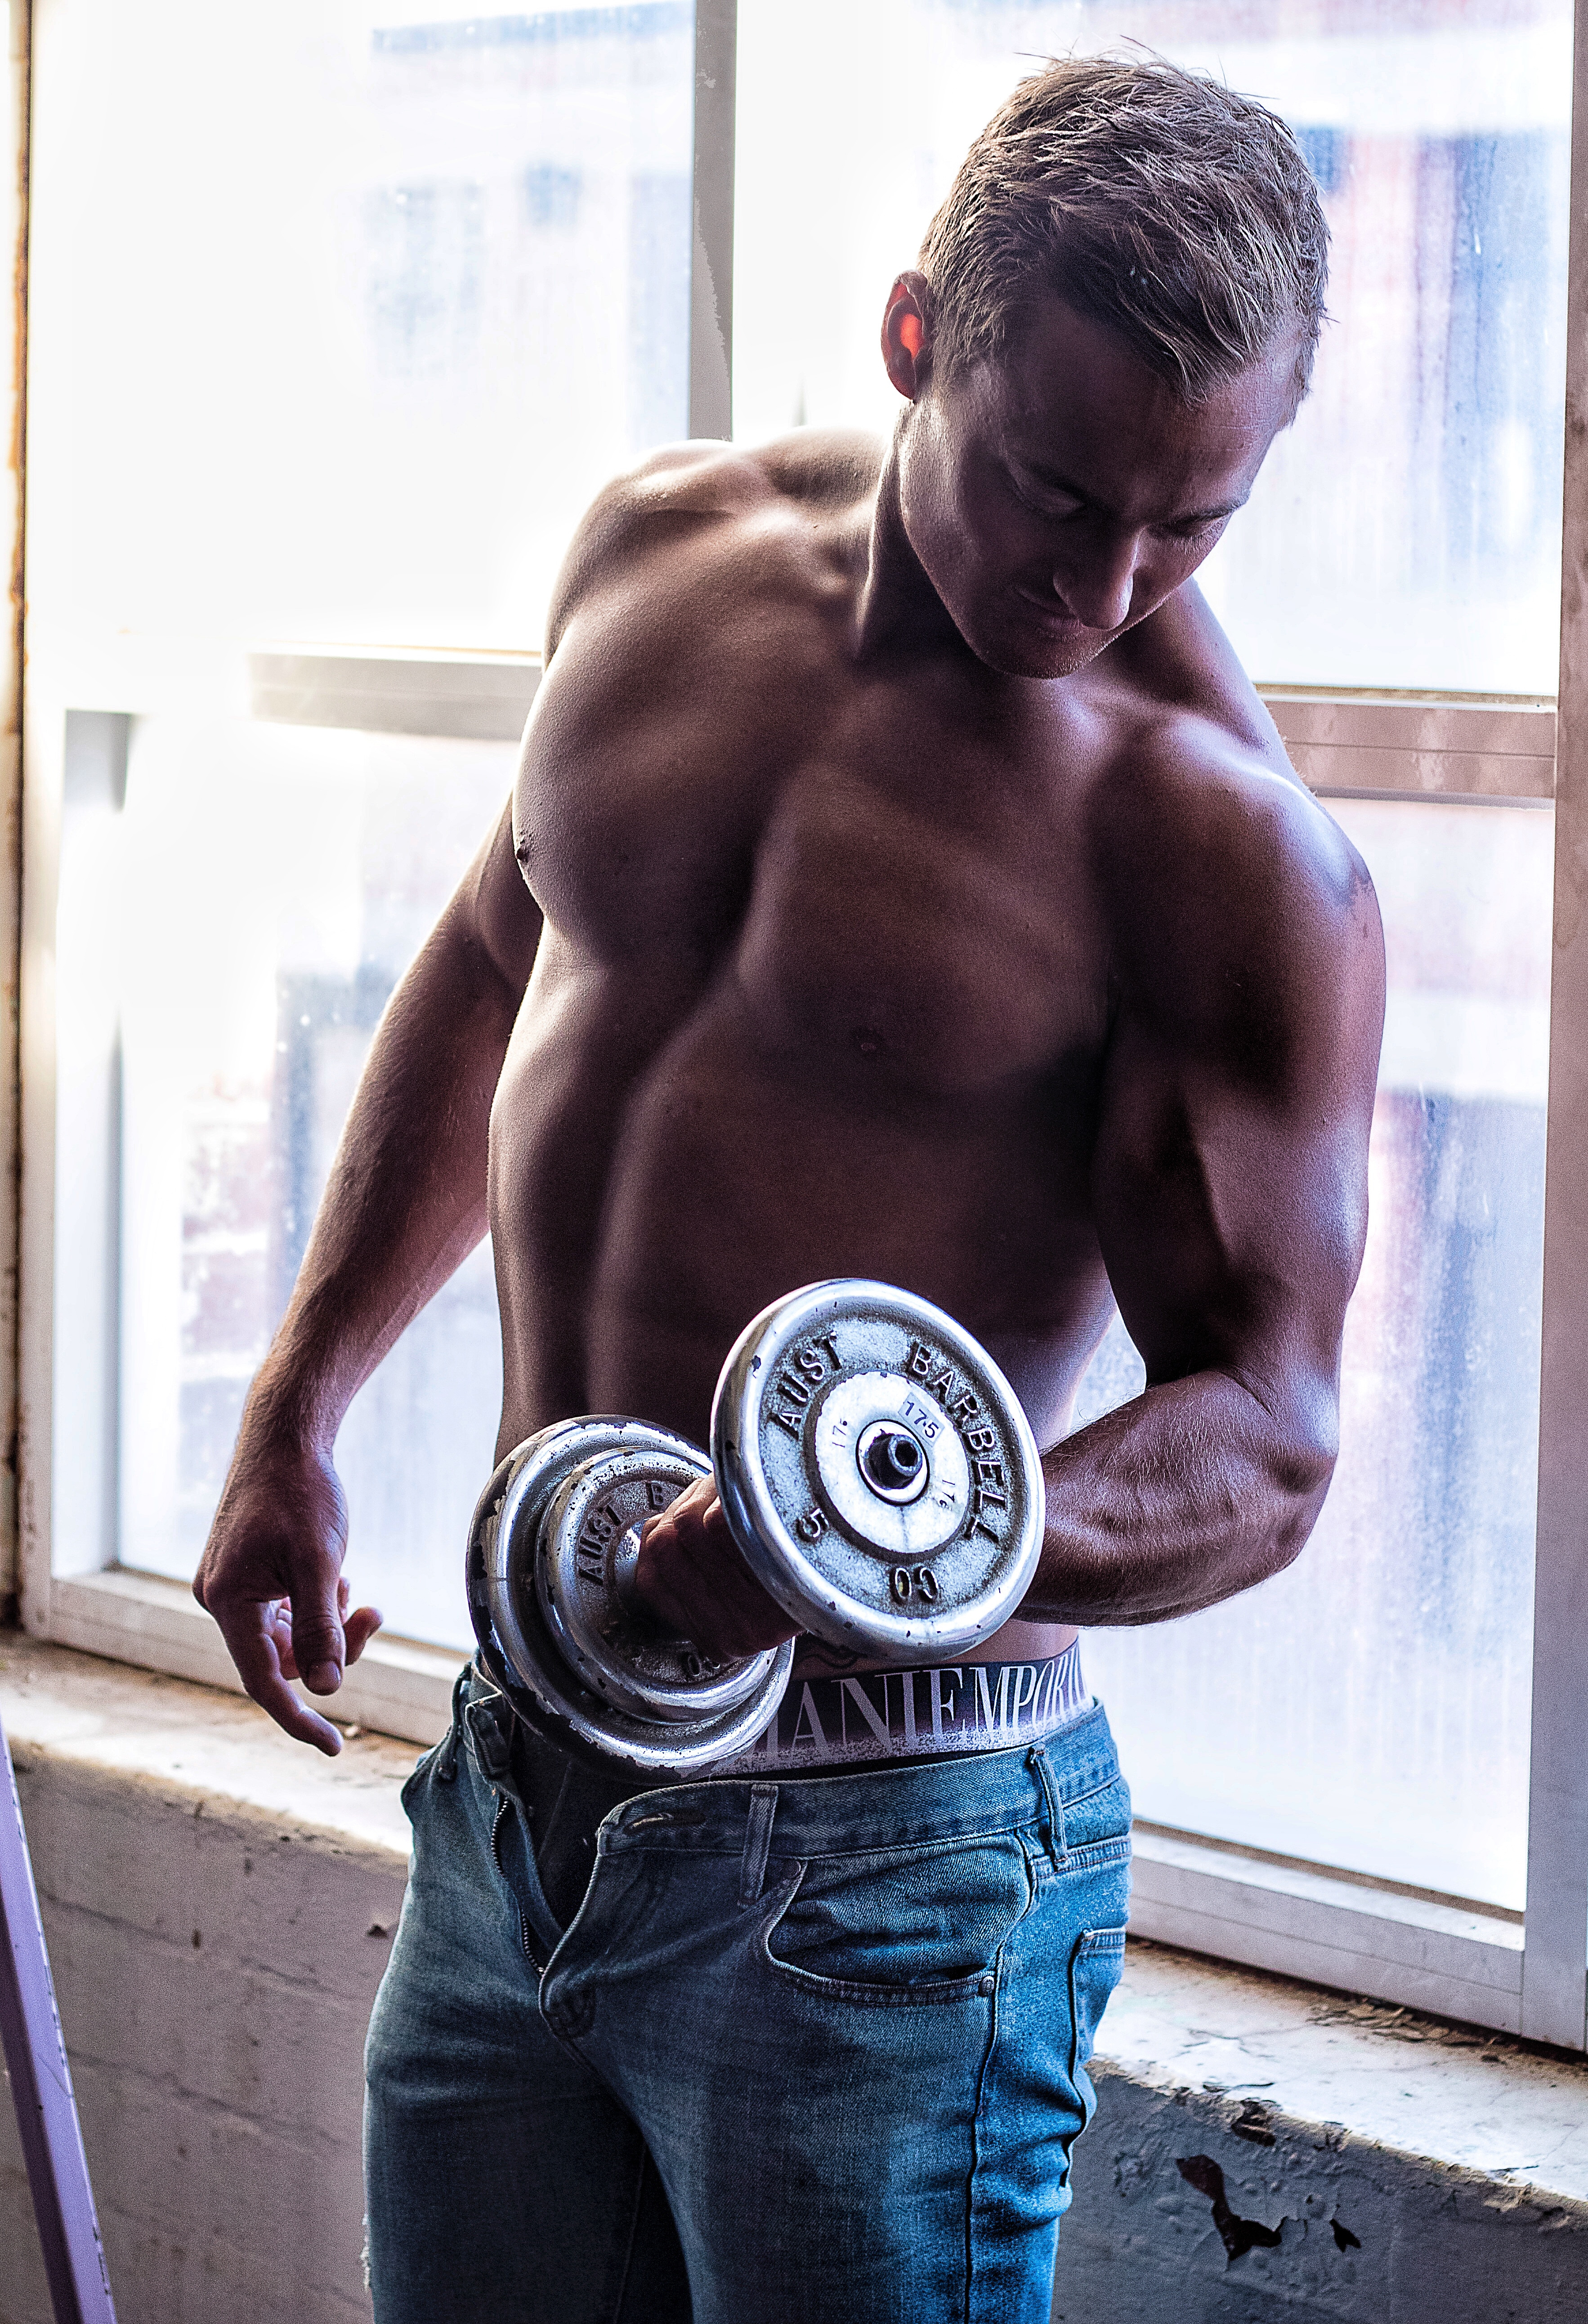 Fitness and Physique